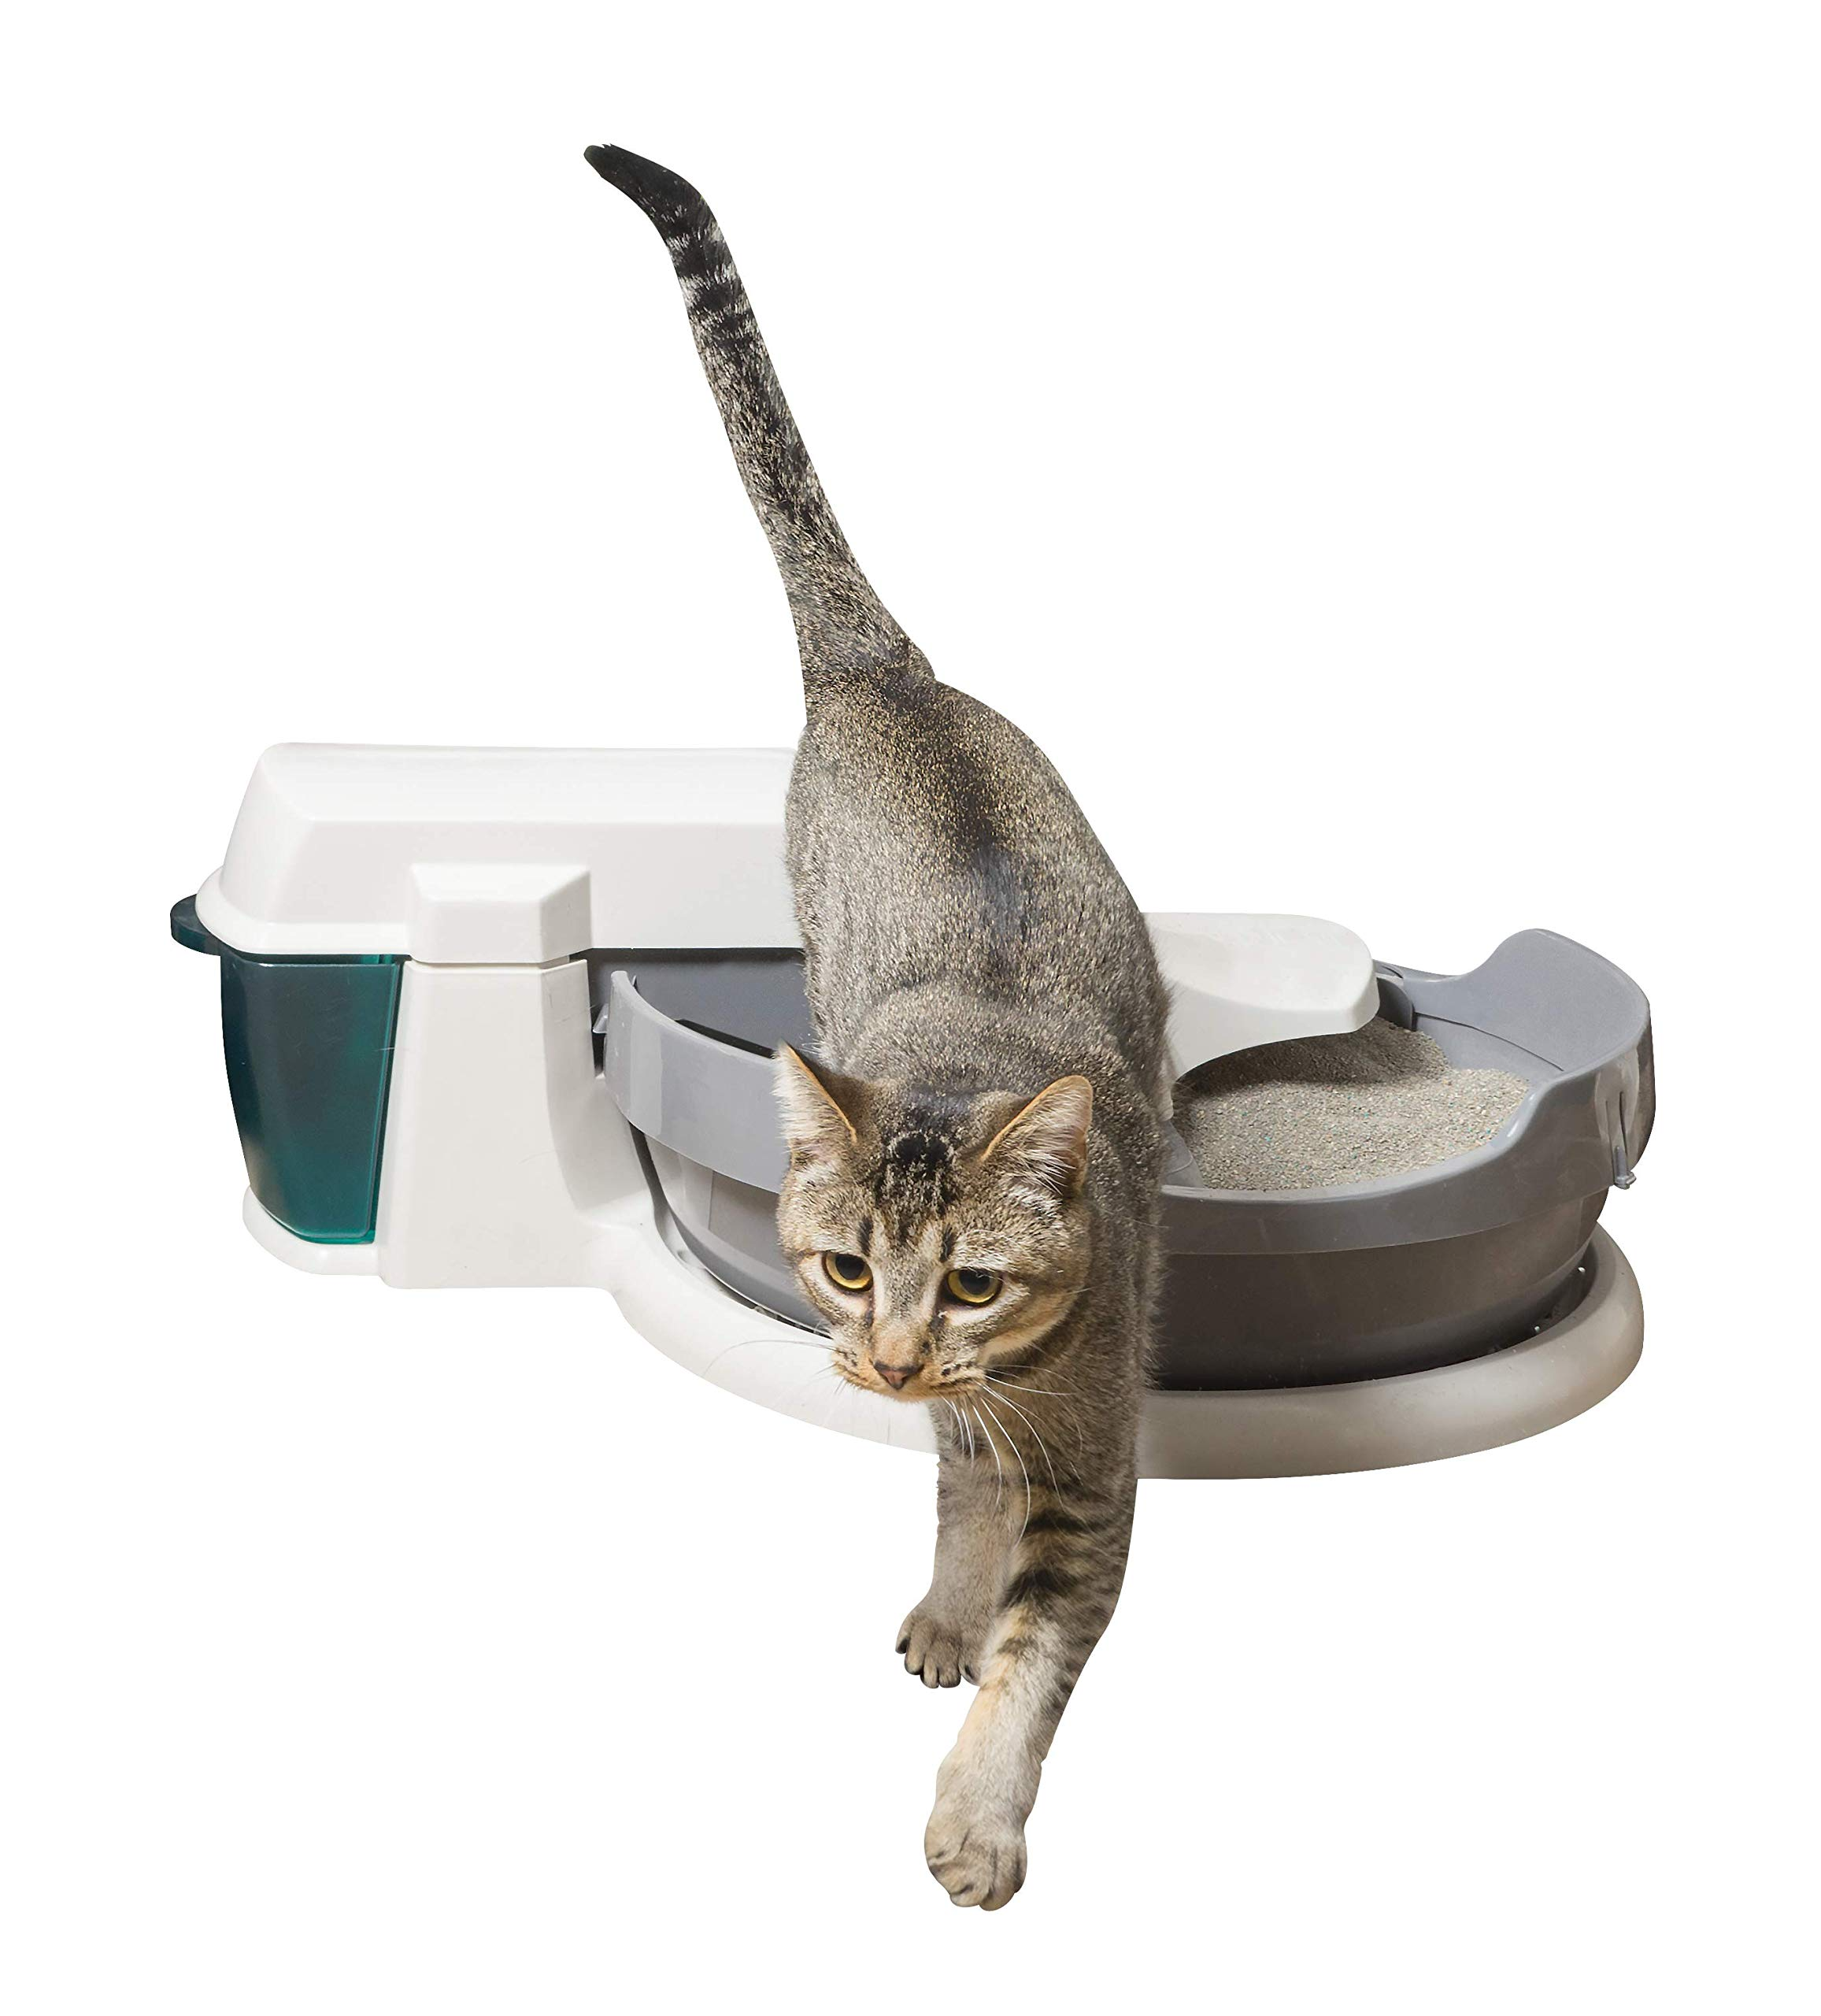 PetSafe Simply Clean Self-Cleaning Cat Litter Box, Automatic, Works with Clumping Cat Litter by PetSafe